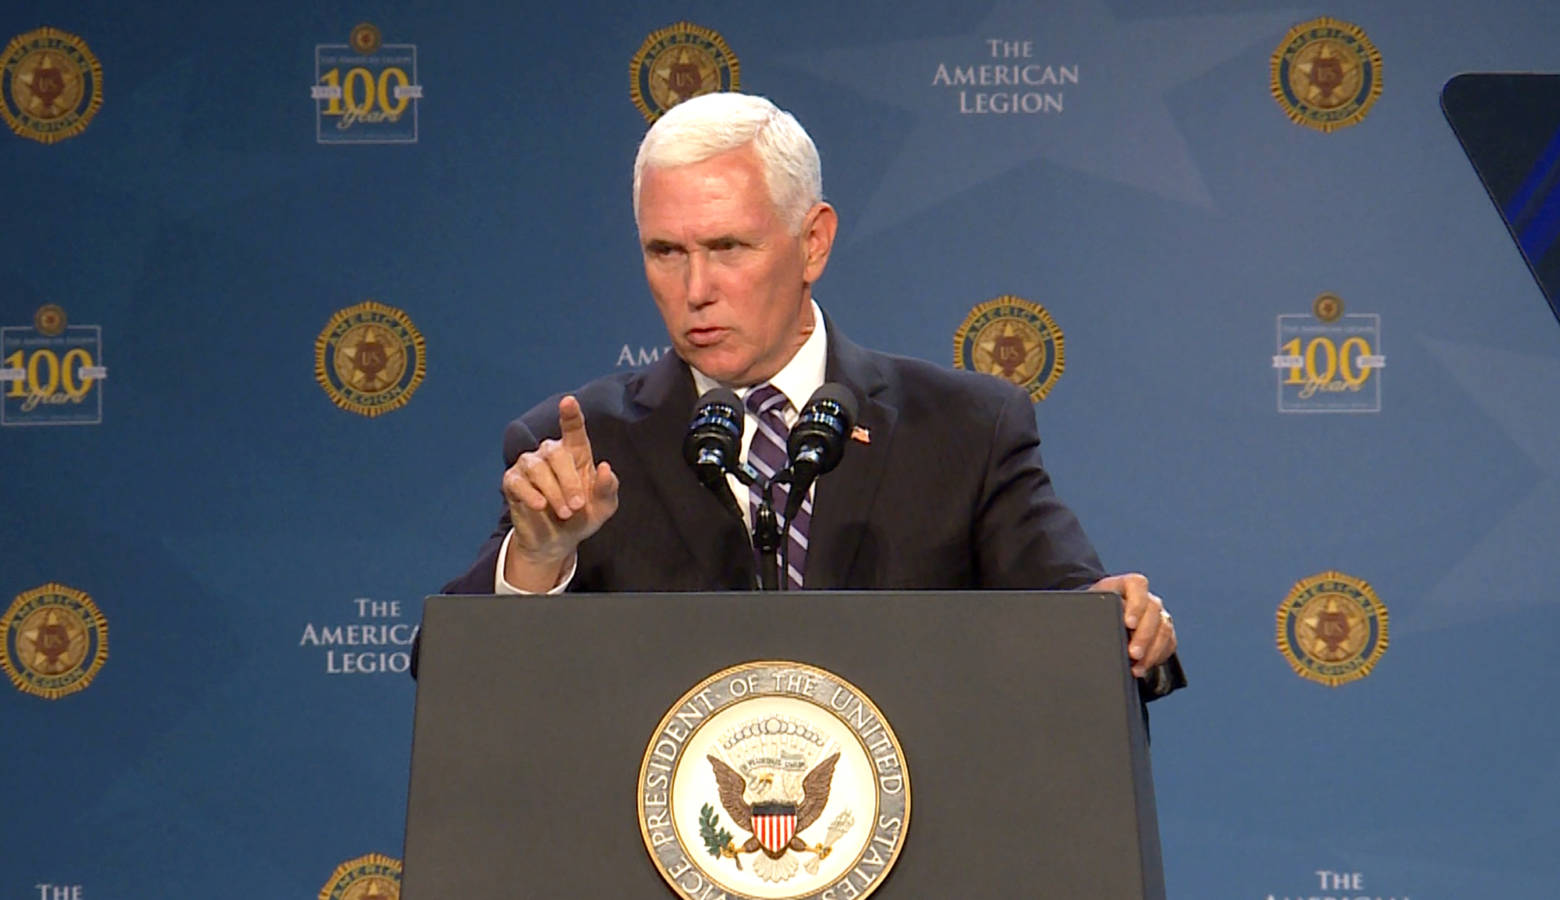 Vice President Mike Pence spoke to hundreds in Indianapolis at the American Legion's national convention. (Lauren Chapman/IPB News)